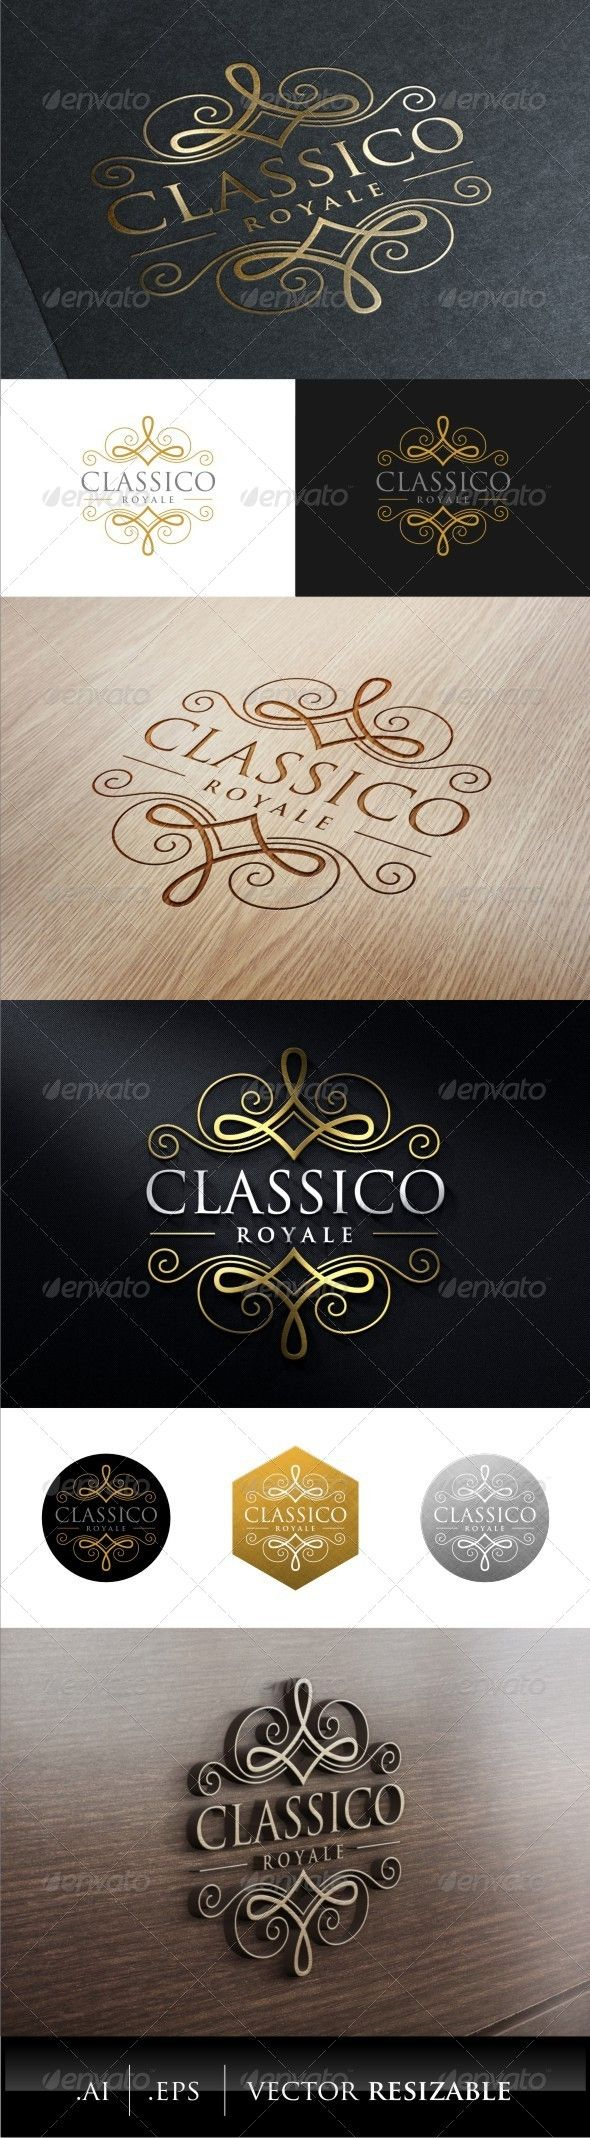 Classic Royal Logo — Vector EPS #business #decorative • Available here → https://graphicriver.net/item/classic-royal-logo/7879641?ref=pxcr